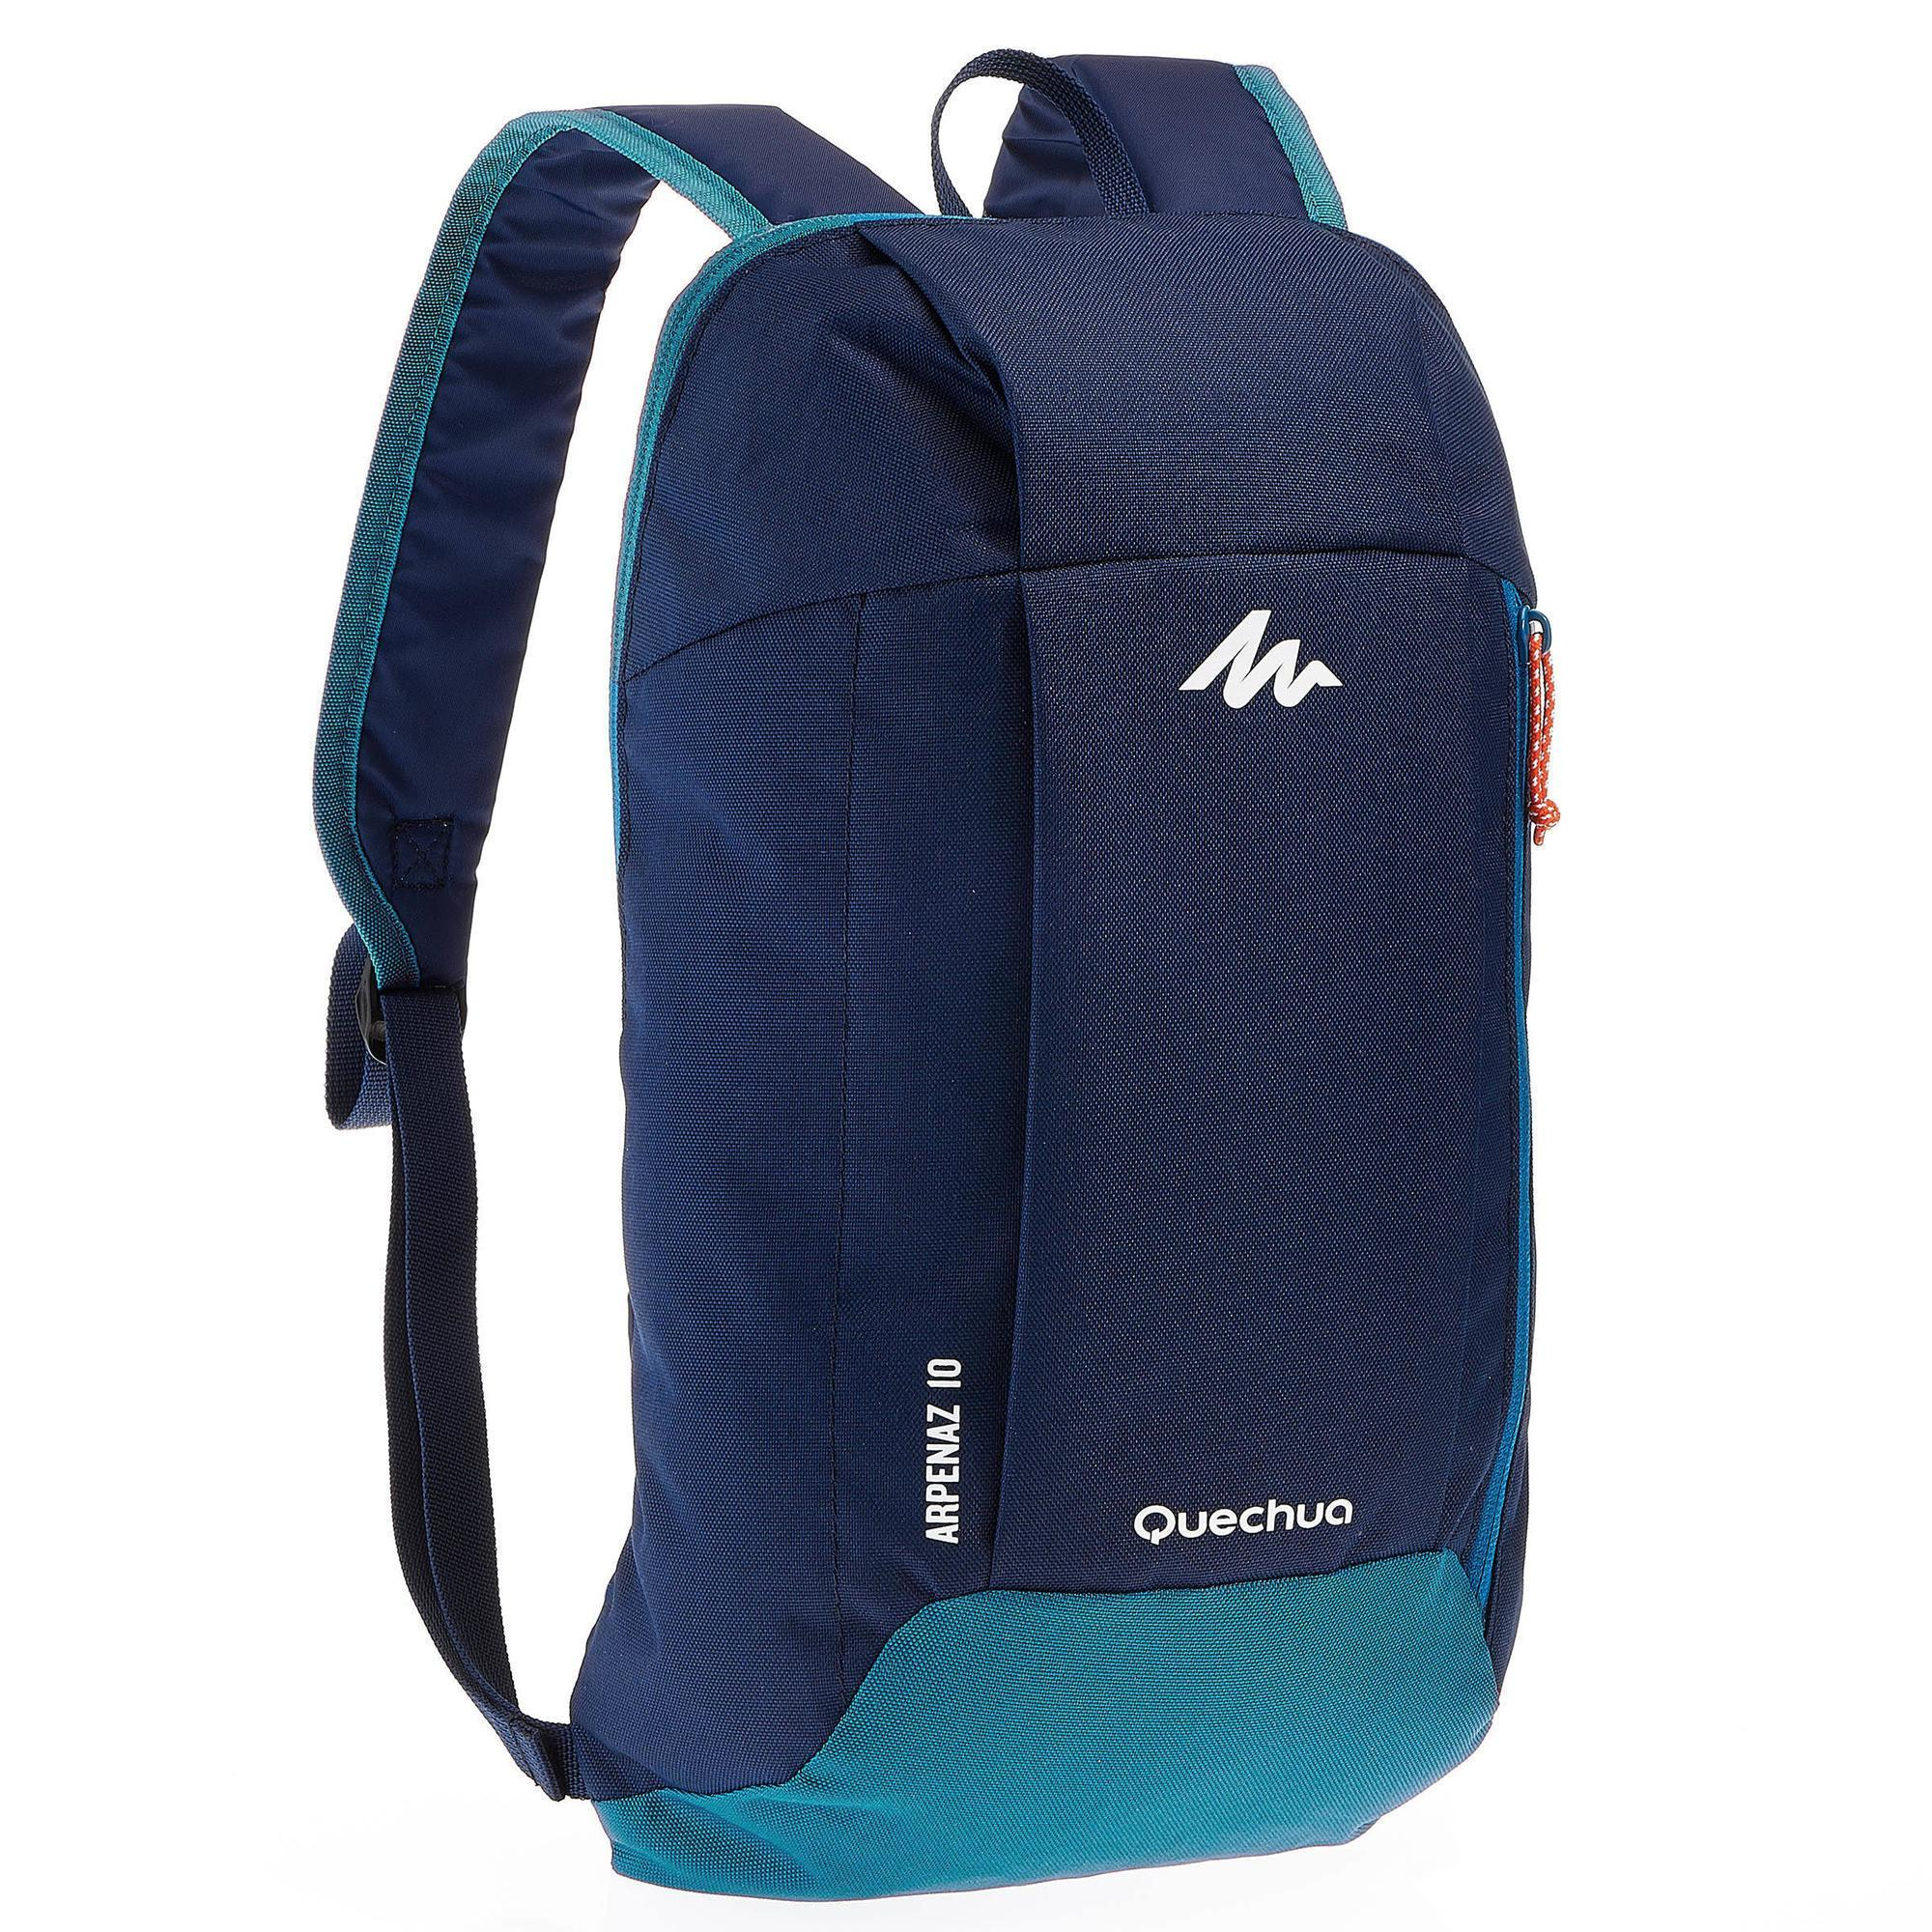 nh100 10 l hiking backpack blue blue quechua. Black Bedroom Furniture Sets. Home Design Ideas